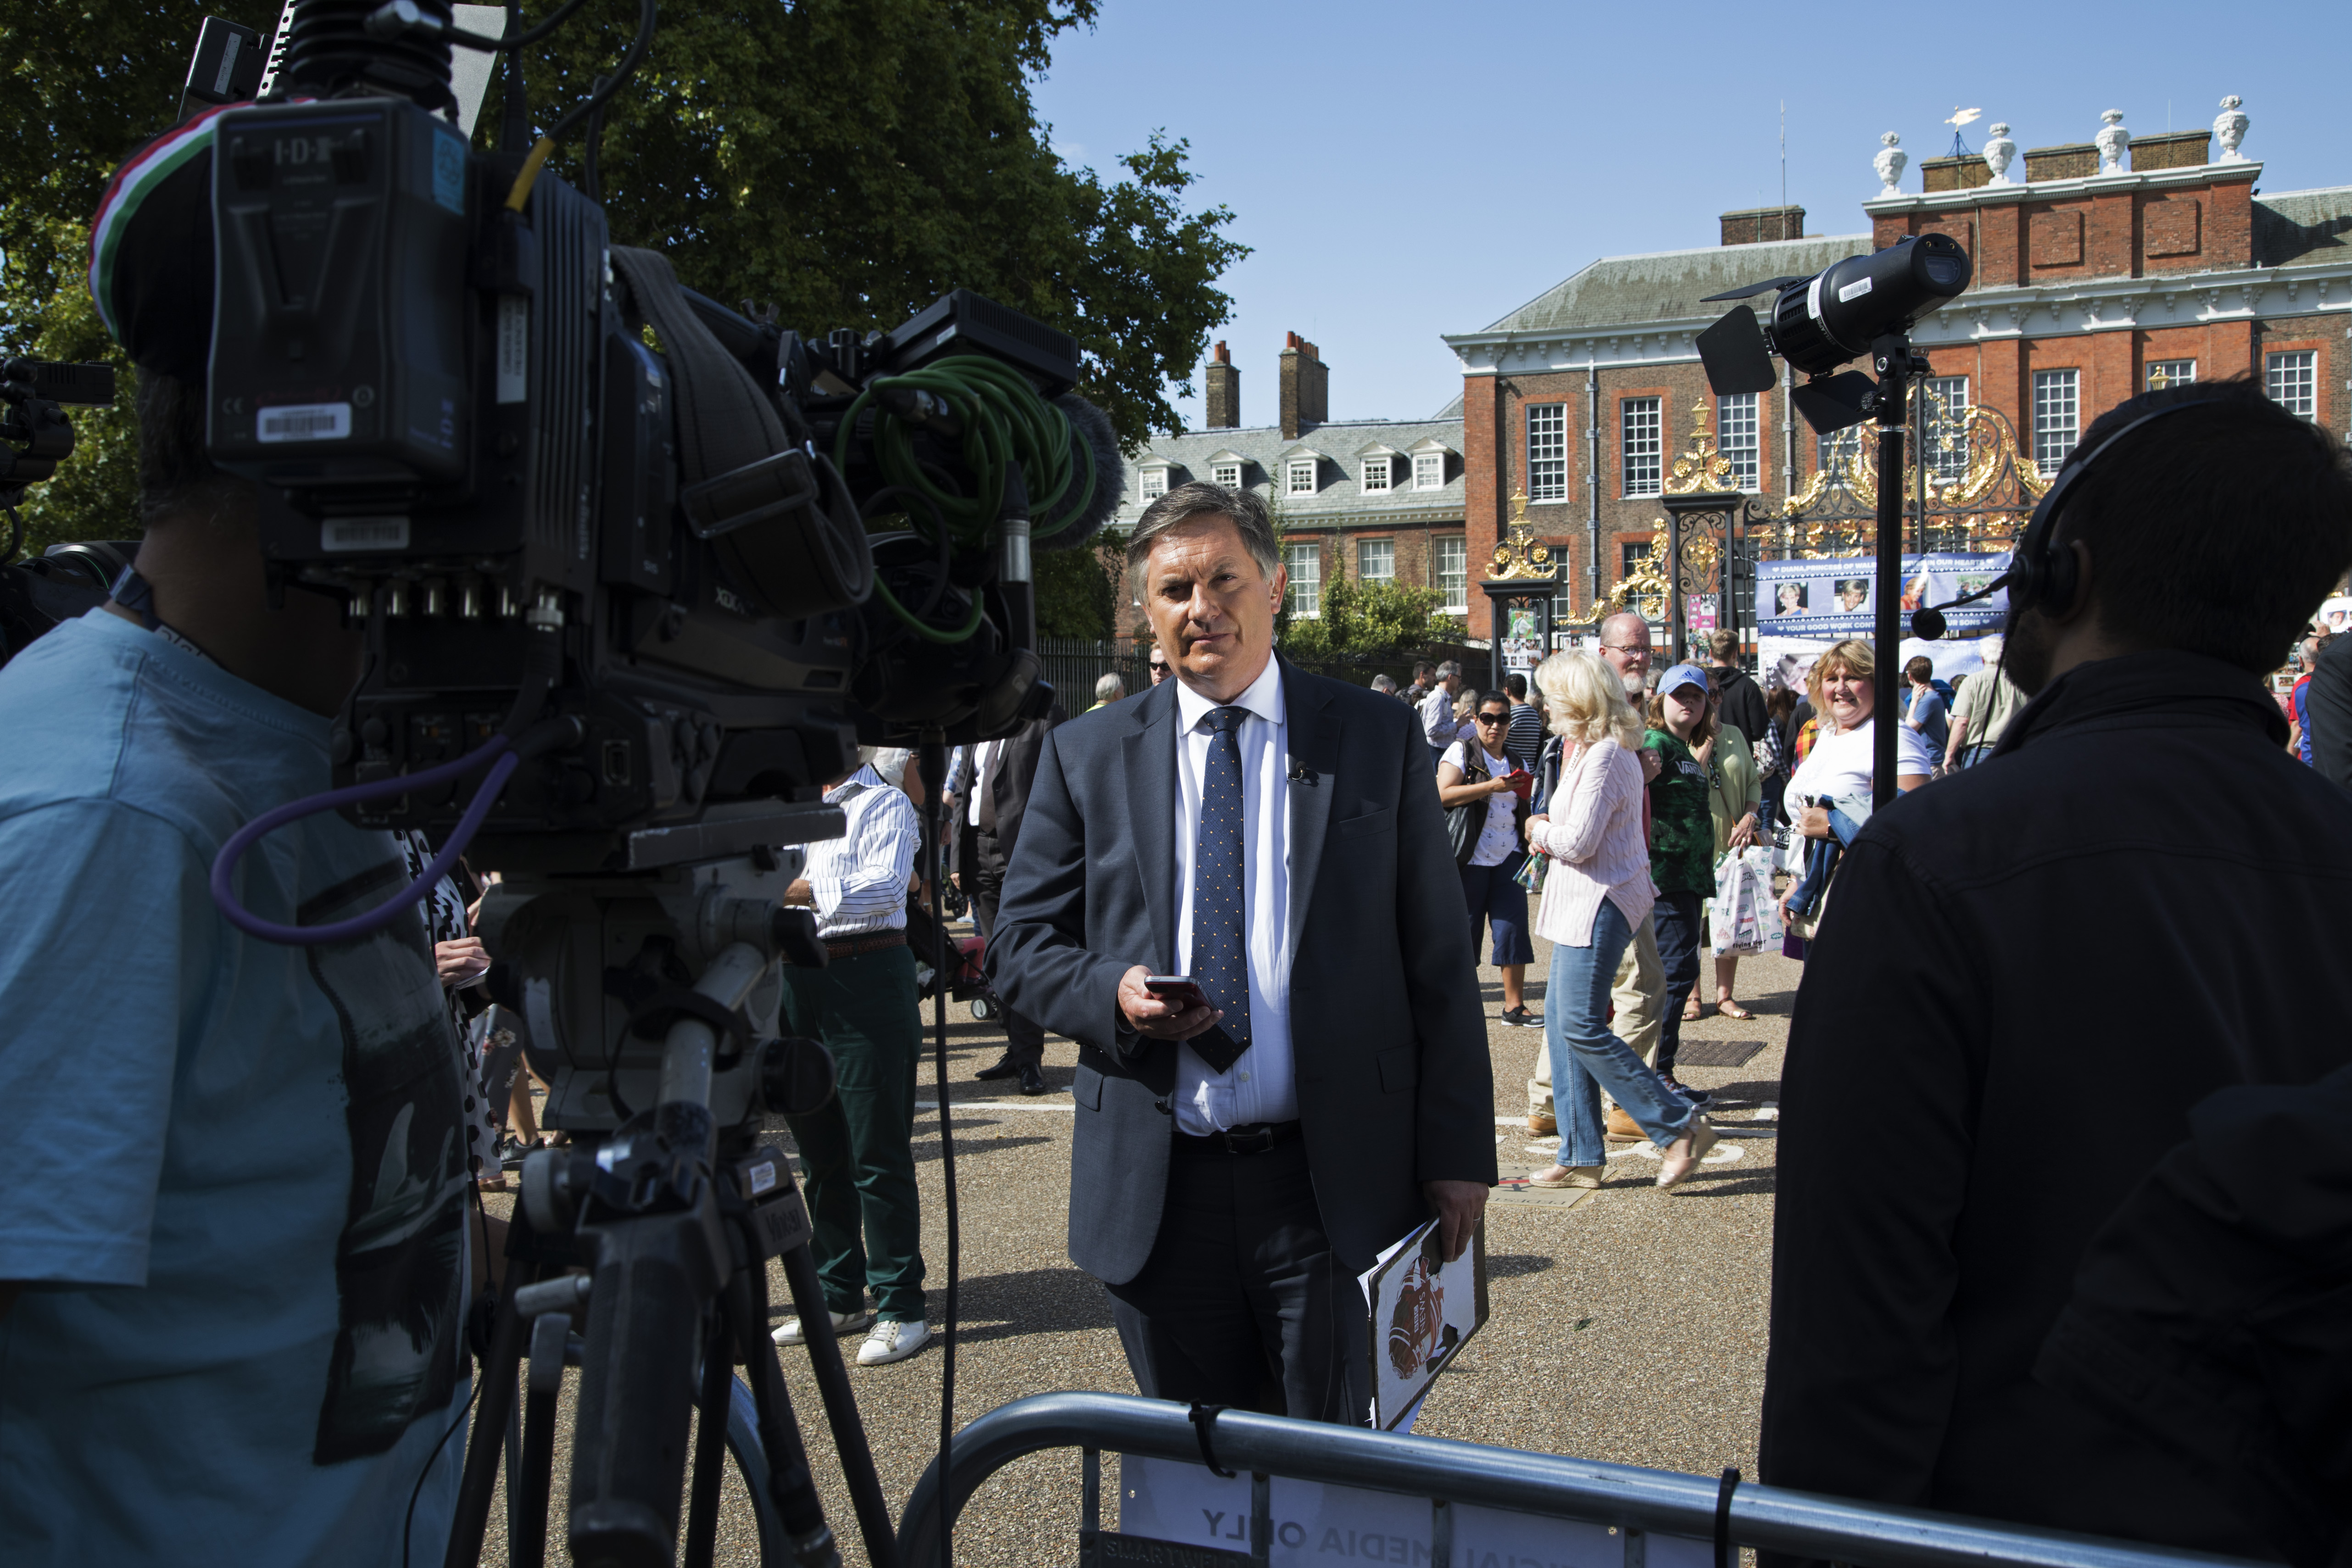 Clips of BBC Simon McCoy go viral all the time. (photo by Mike Kemp/In Pictures via Getty Images)